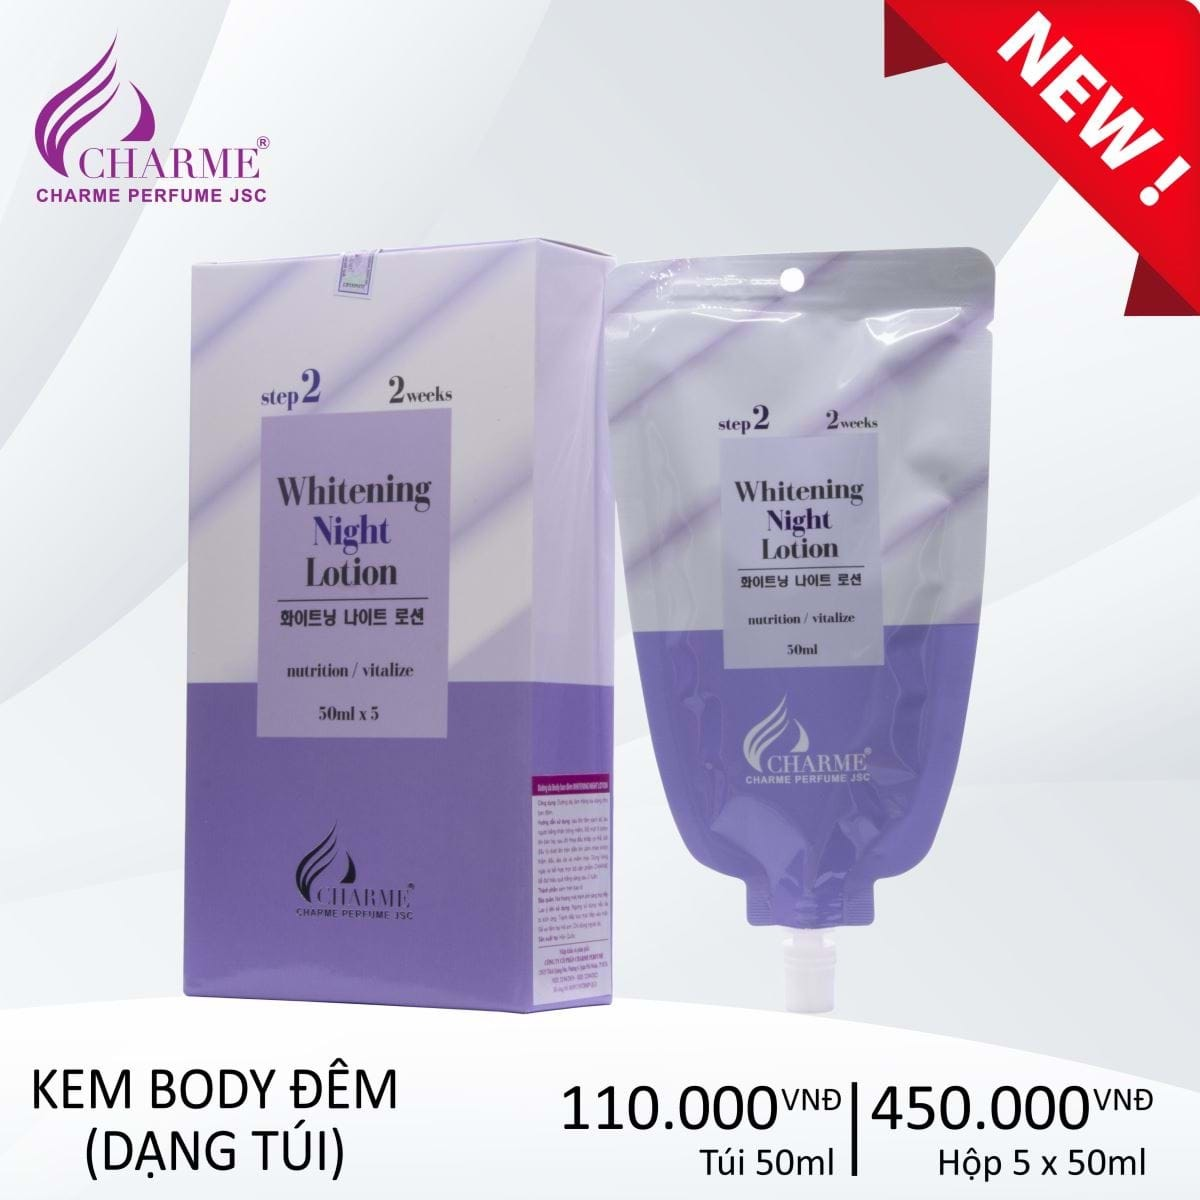 DƯỠNG DA BODY BAN ĐÊM WHITENING NIGHT LOTION